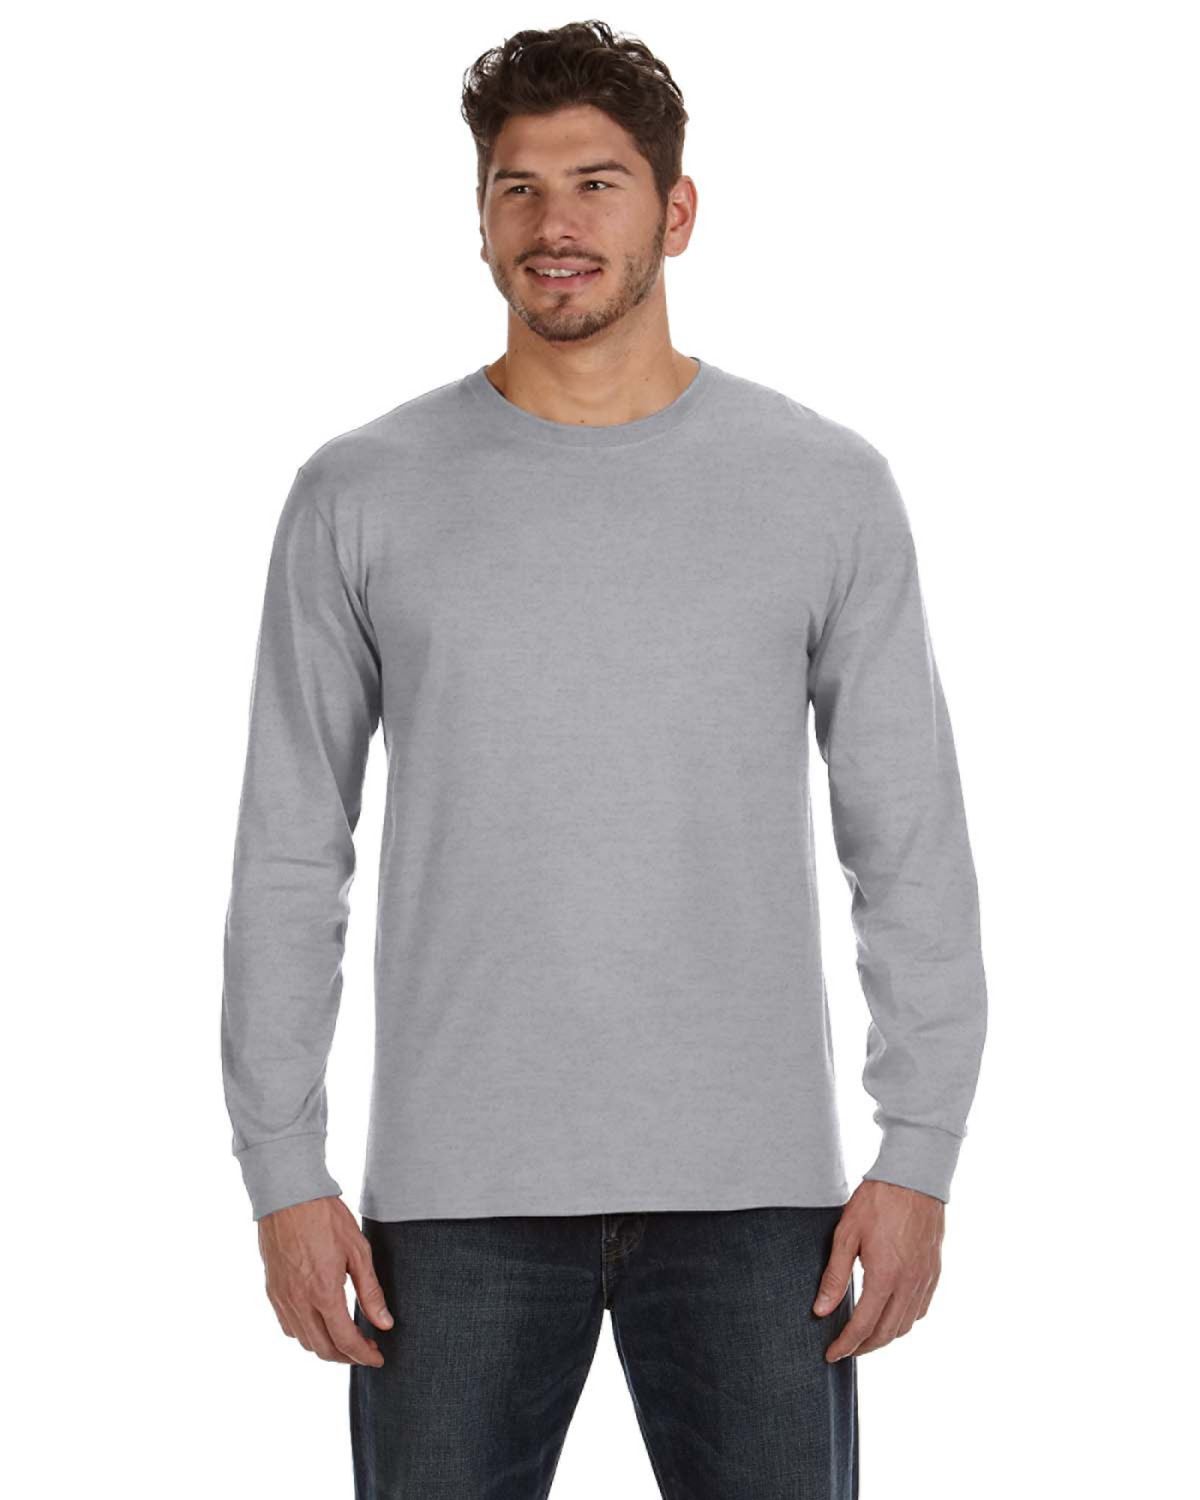 b249d8c27 Lightweight Long Sleeve Cotton T Shirts – EDGE Engineering and ...